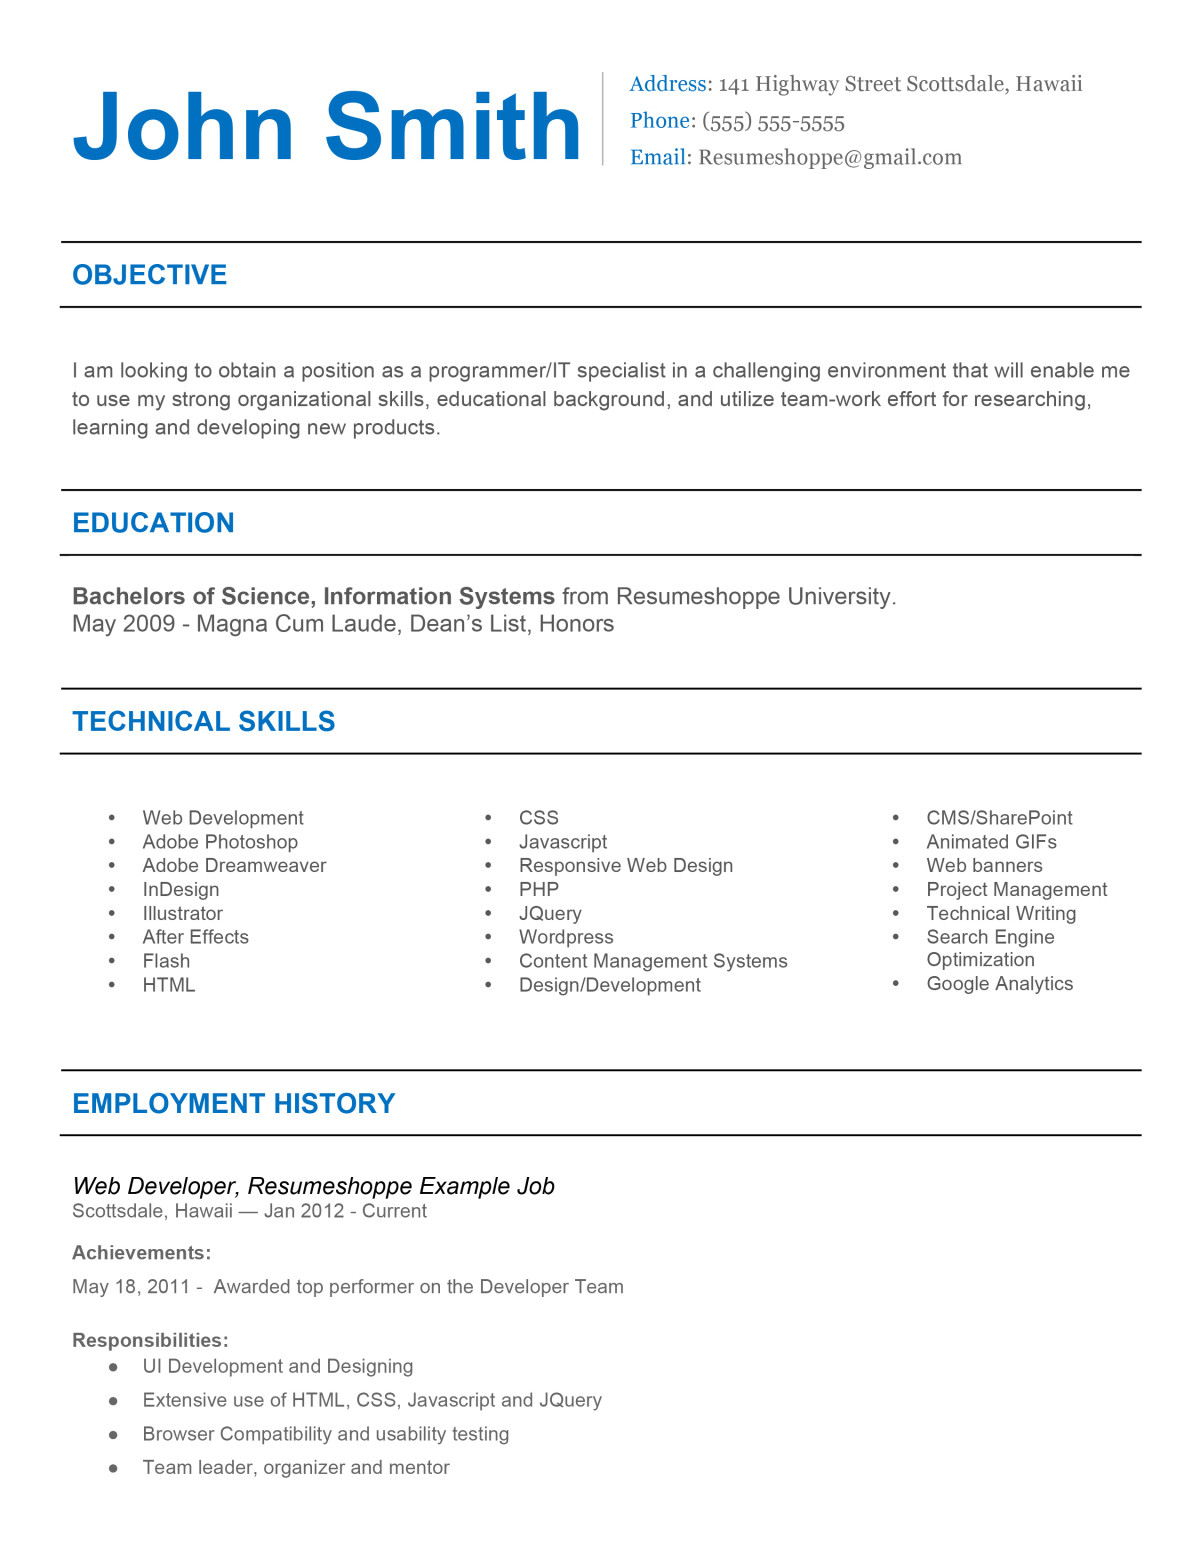 the john resume 2 1 - Effective Resume